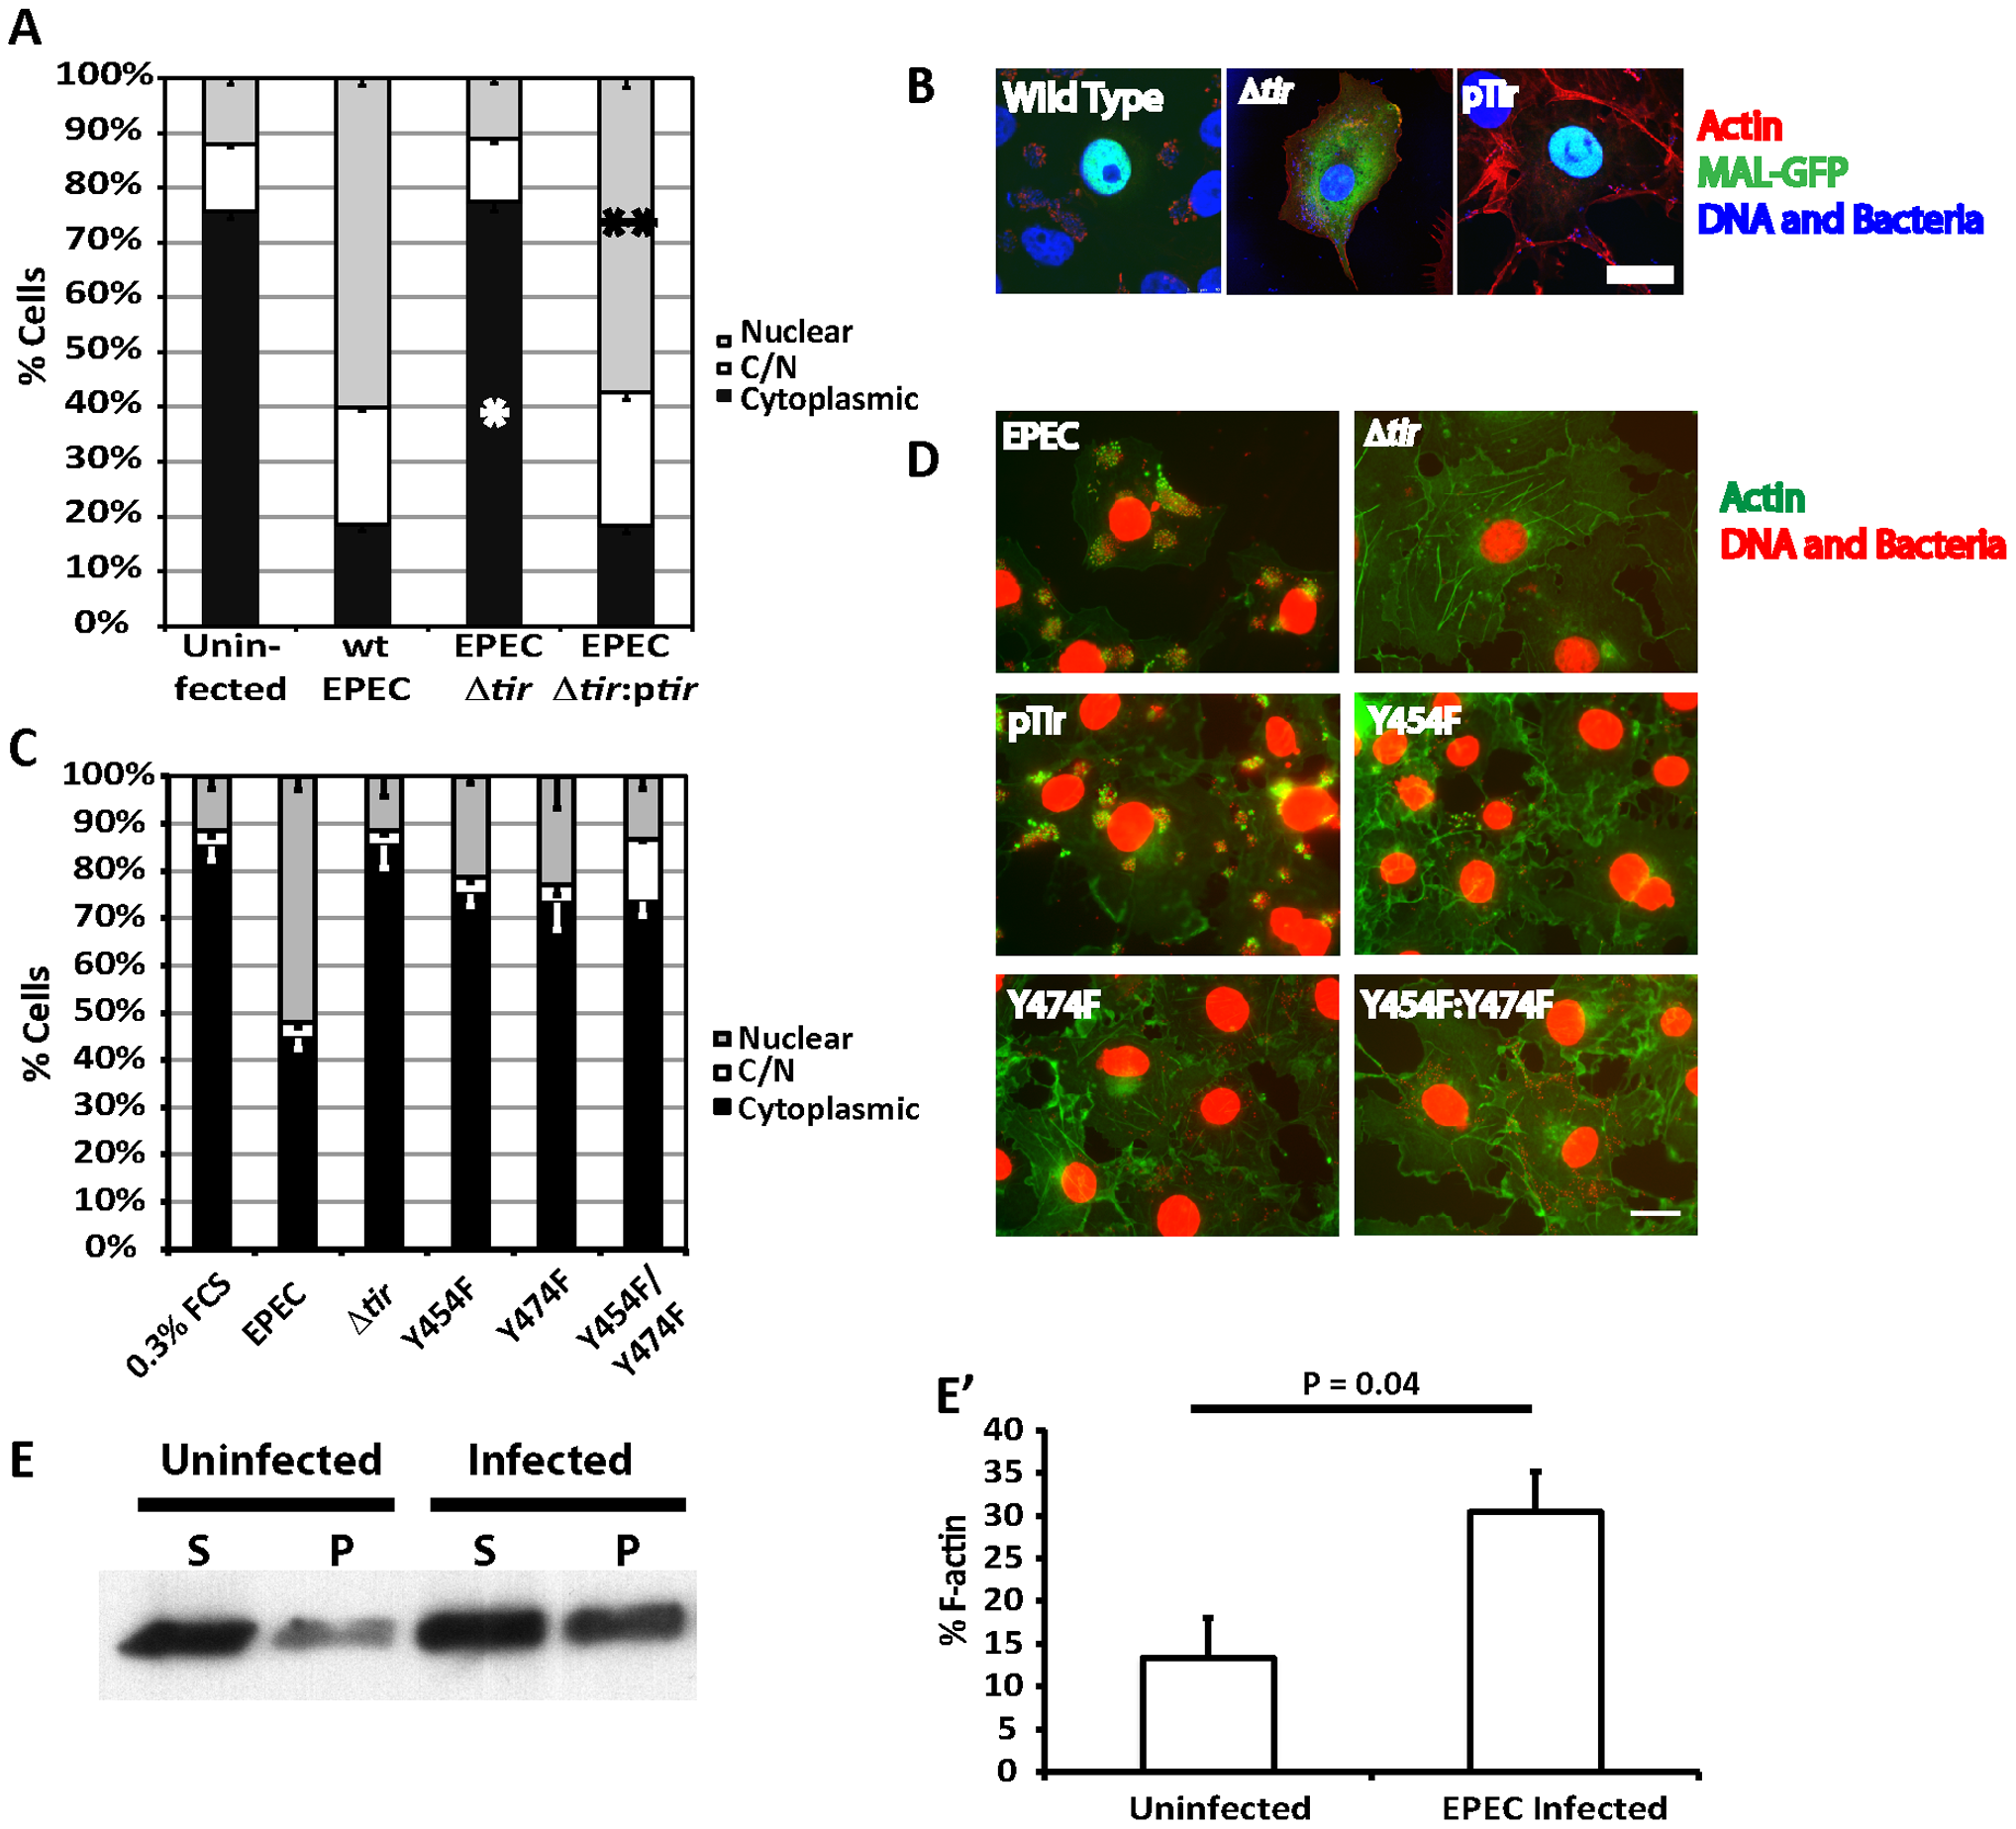 Tir is essential for EPEC induced MAL-GFP translocation.